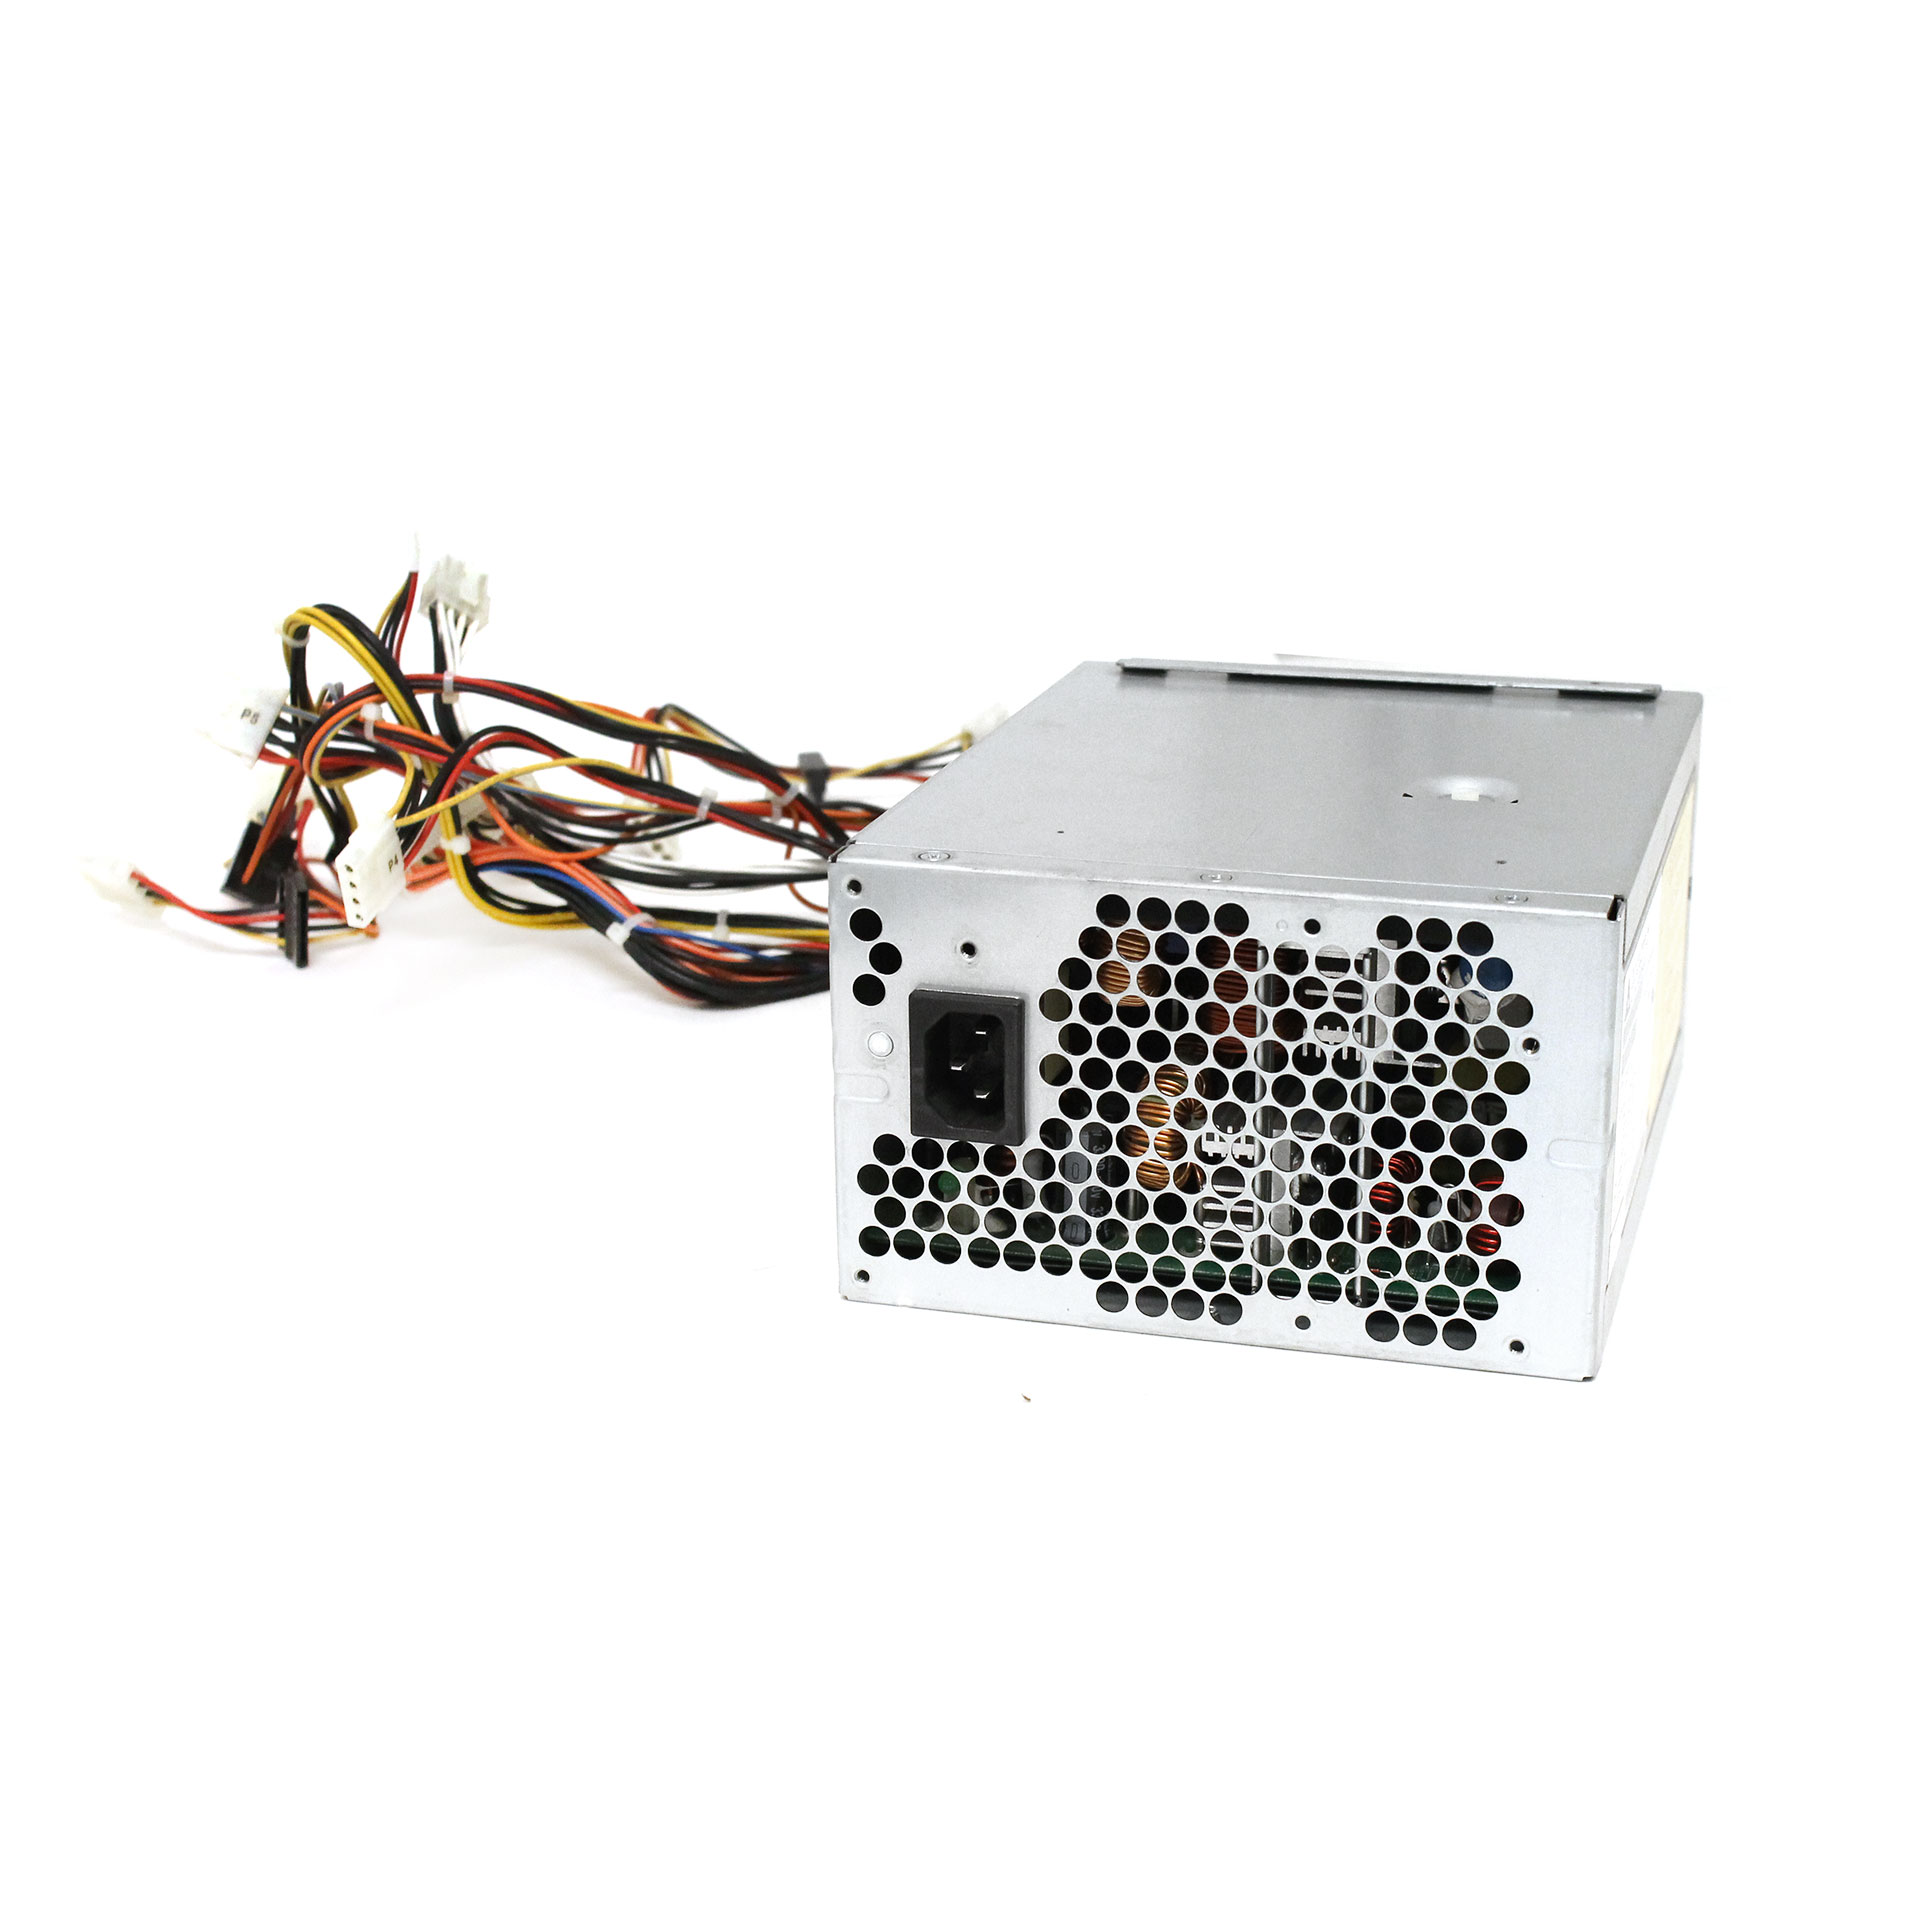 HP Delta XW8200 Computer 600W Power Supply 345526-002 DPS-600NB